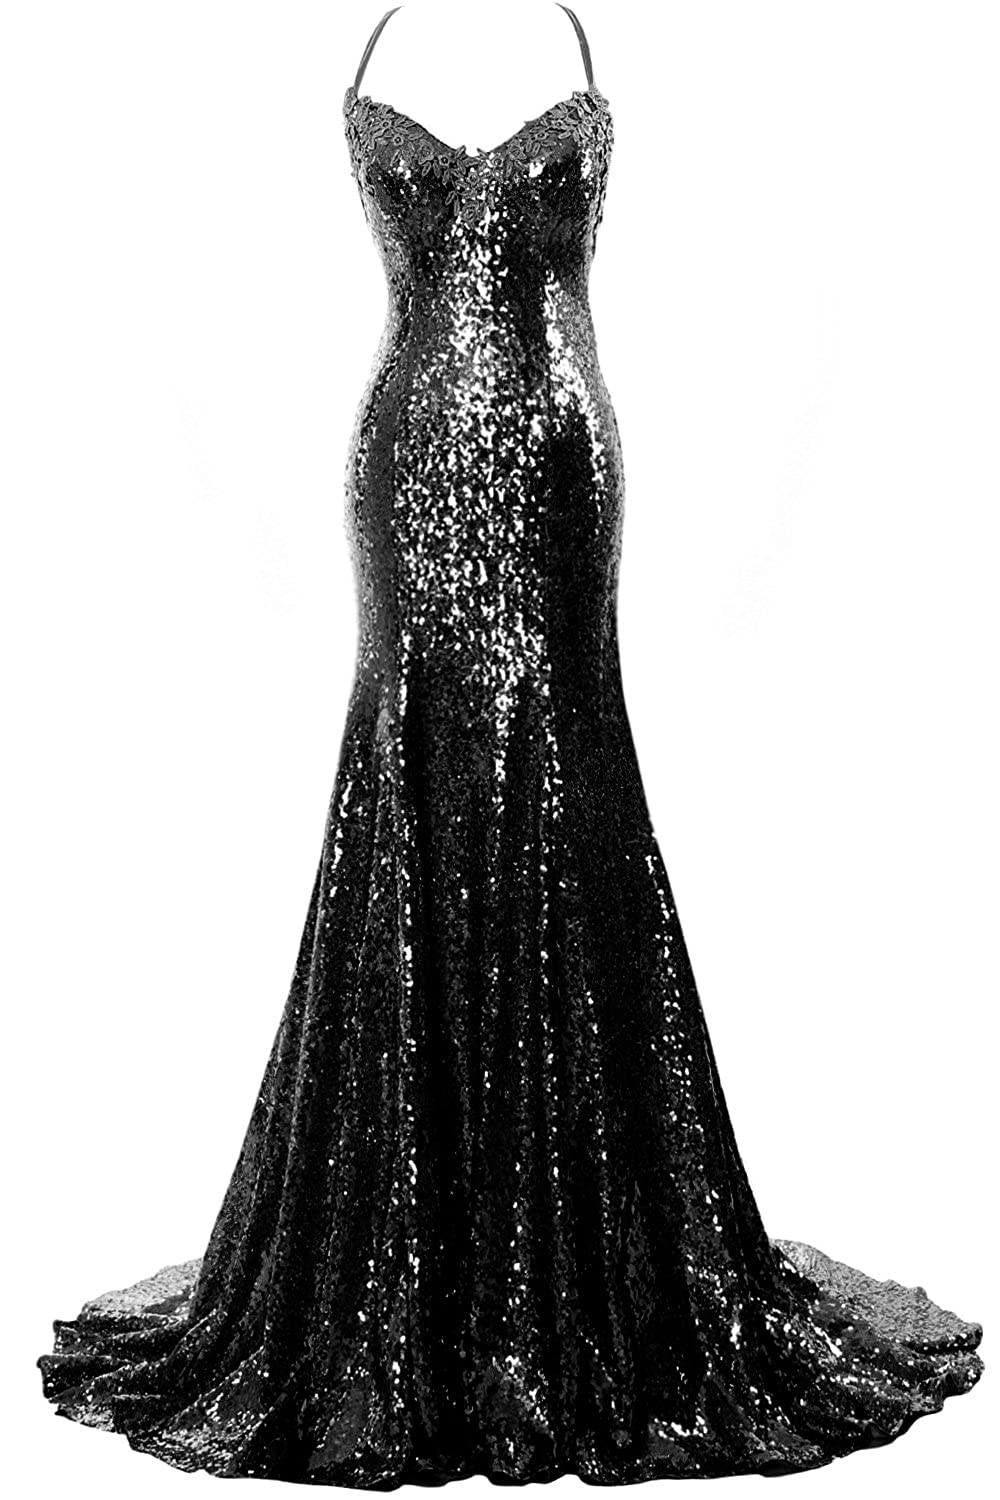 6d39e575850a MACloth Women Mermaid Sequin Prom Gown Sexy V Neck Wedding Party Formal Gown:  Amazon.co.uk: Clothing